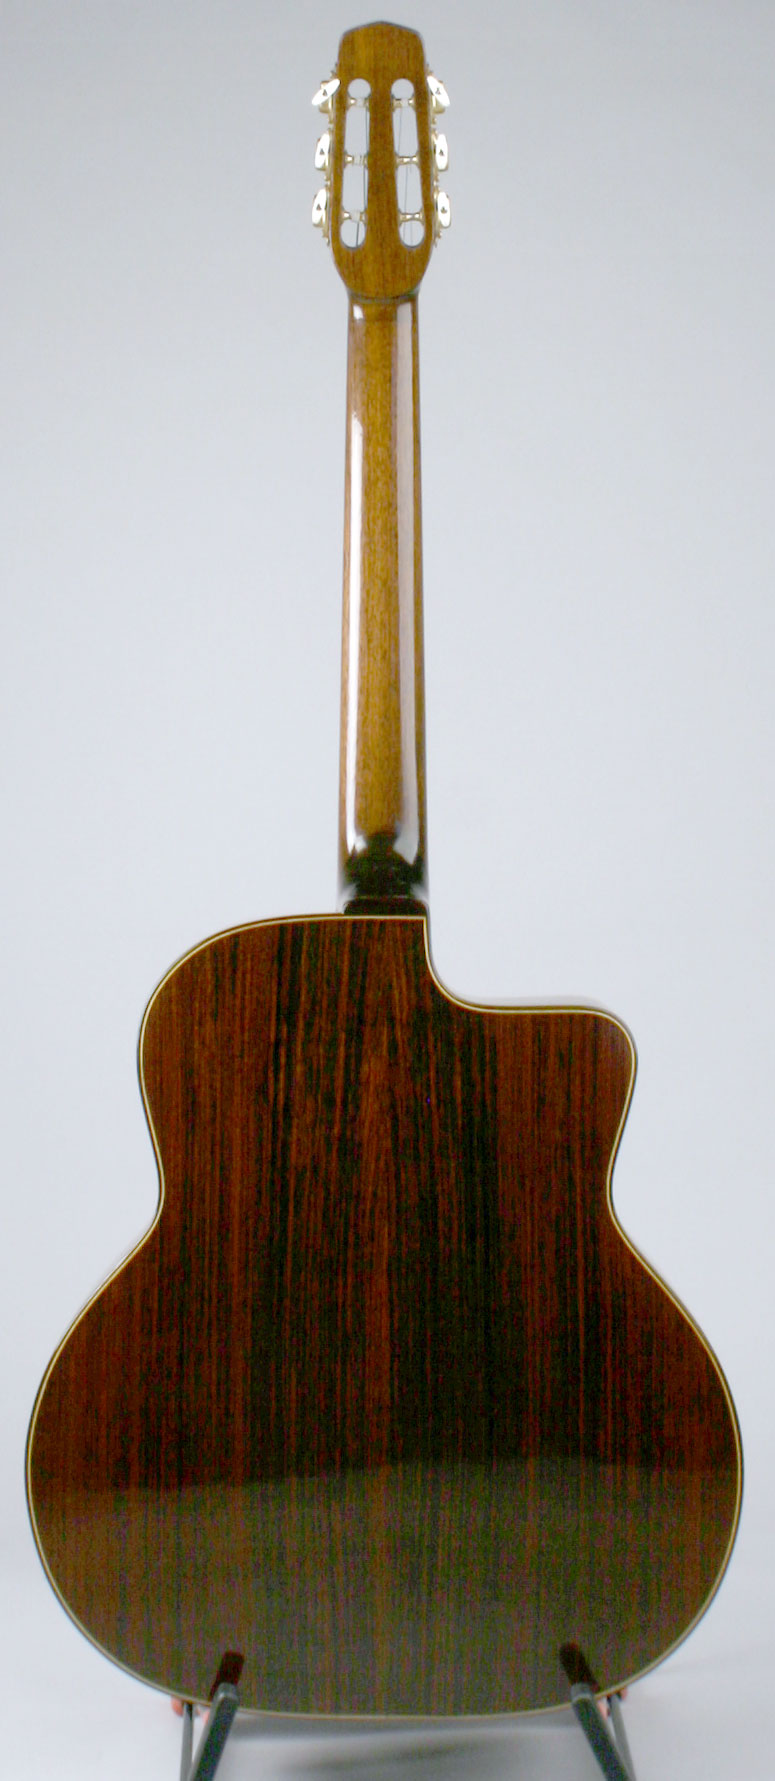 2013 Shopis D'Artagnan Model F LEFTY